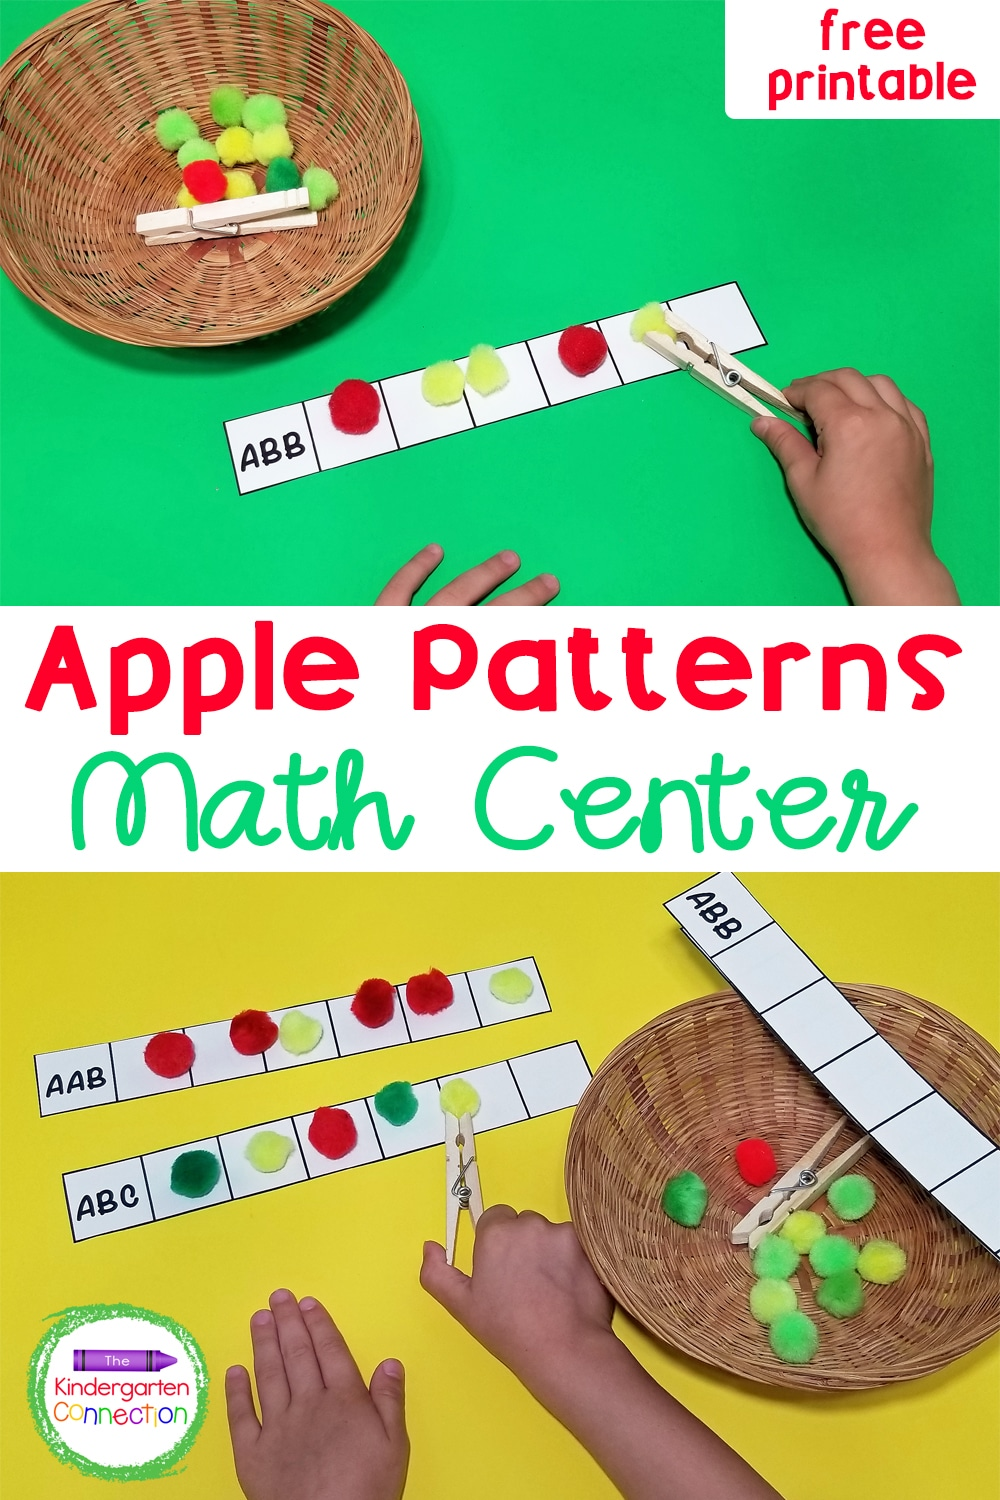 This fun and free Apple Patterns printable activity is great for working on patterning skills and fine motor development at the same time!